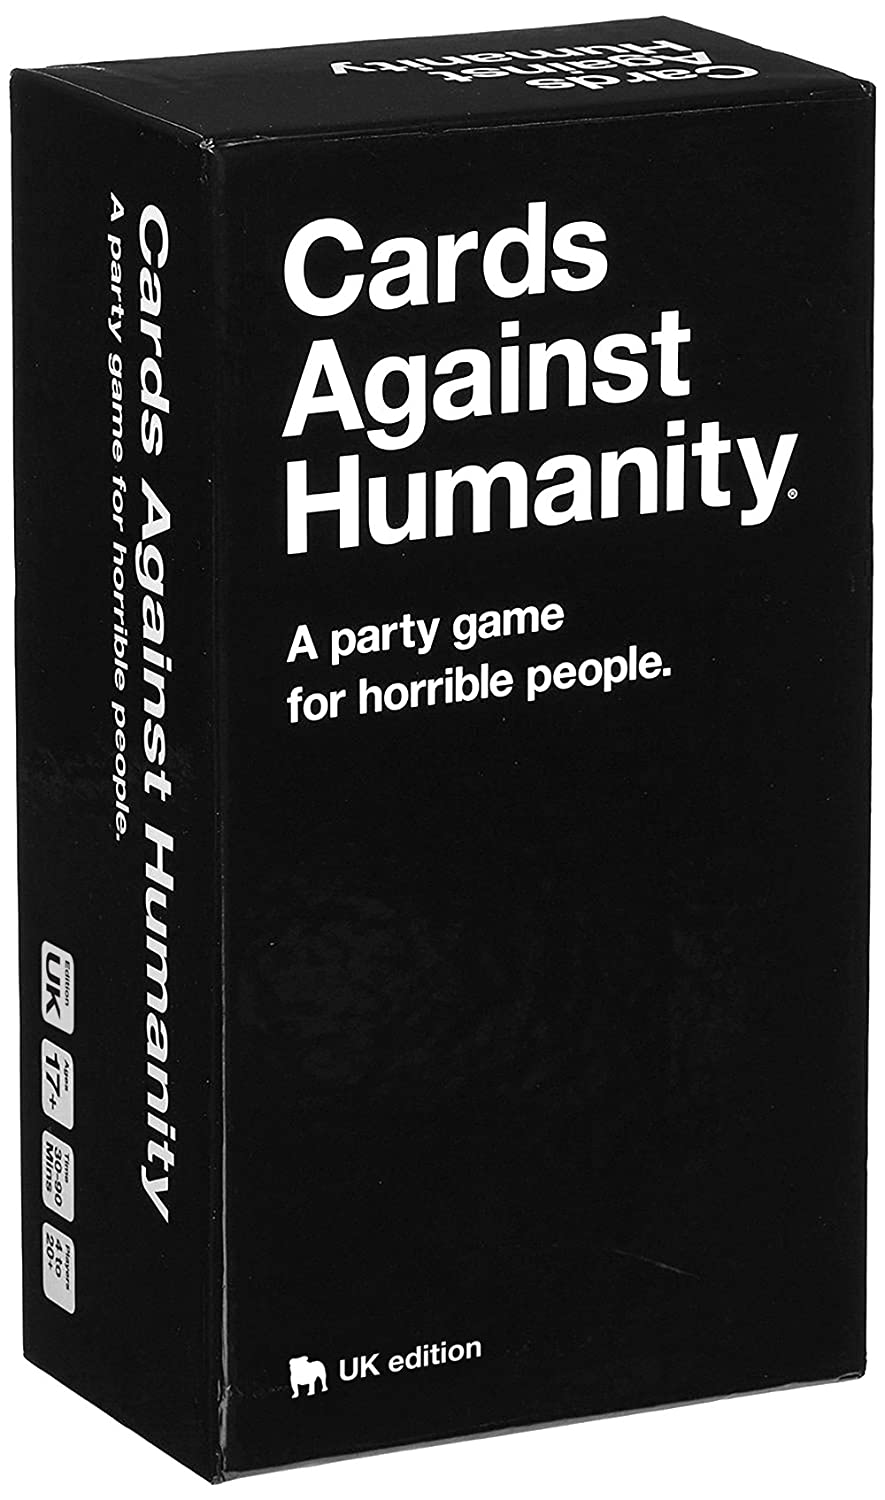 Image of: Combinations Cards Against Humanity Uk Edition Llc Cards Against Humanity Amazoncouk Toys Games Unilad Cards Against Humanity Uk Edition Llc Cards Against Humanity